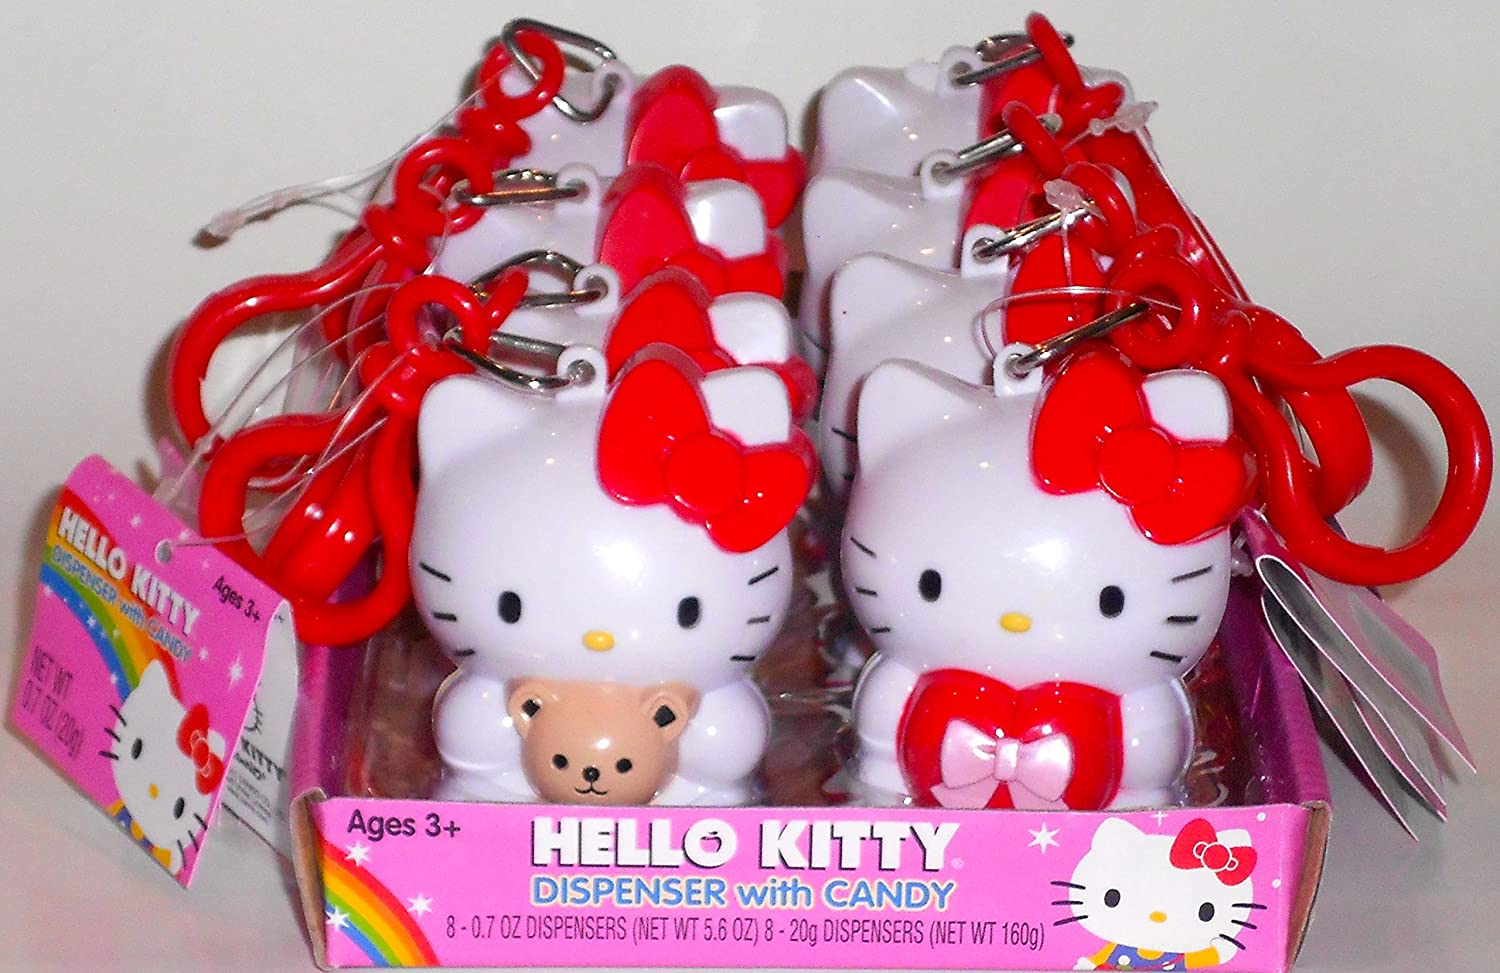 Hello Kitty Candy relleno dispensadores de Samsung Galaxy S3 MINI i8190 ~ 8 unidades: Amazon.es: Hogar